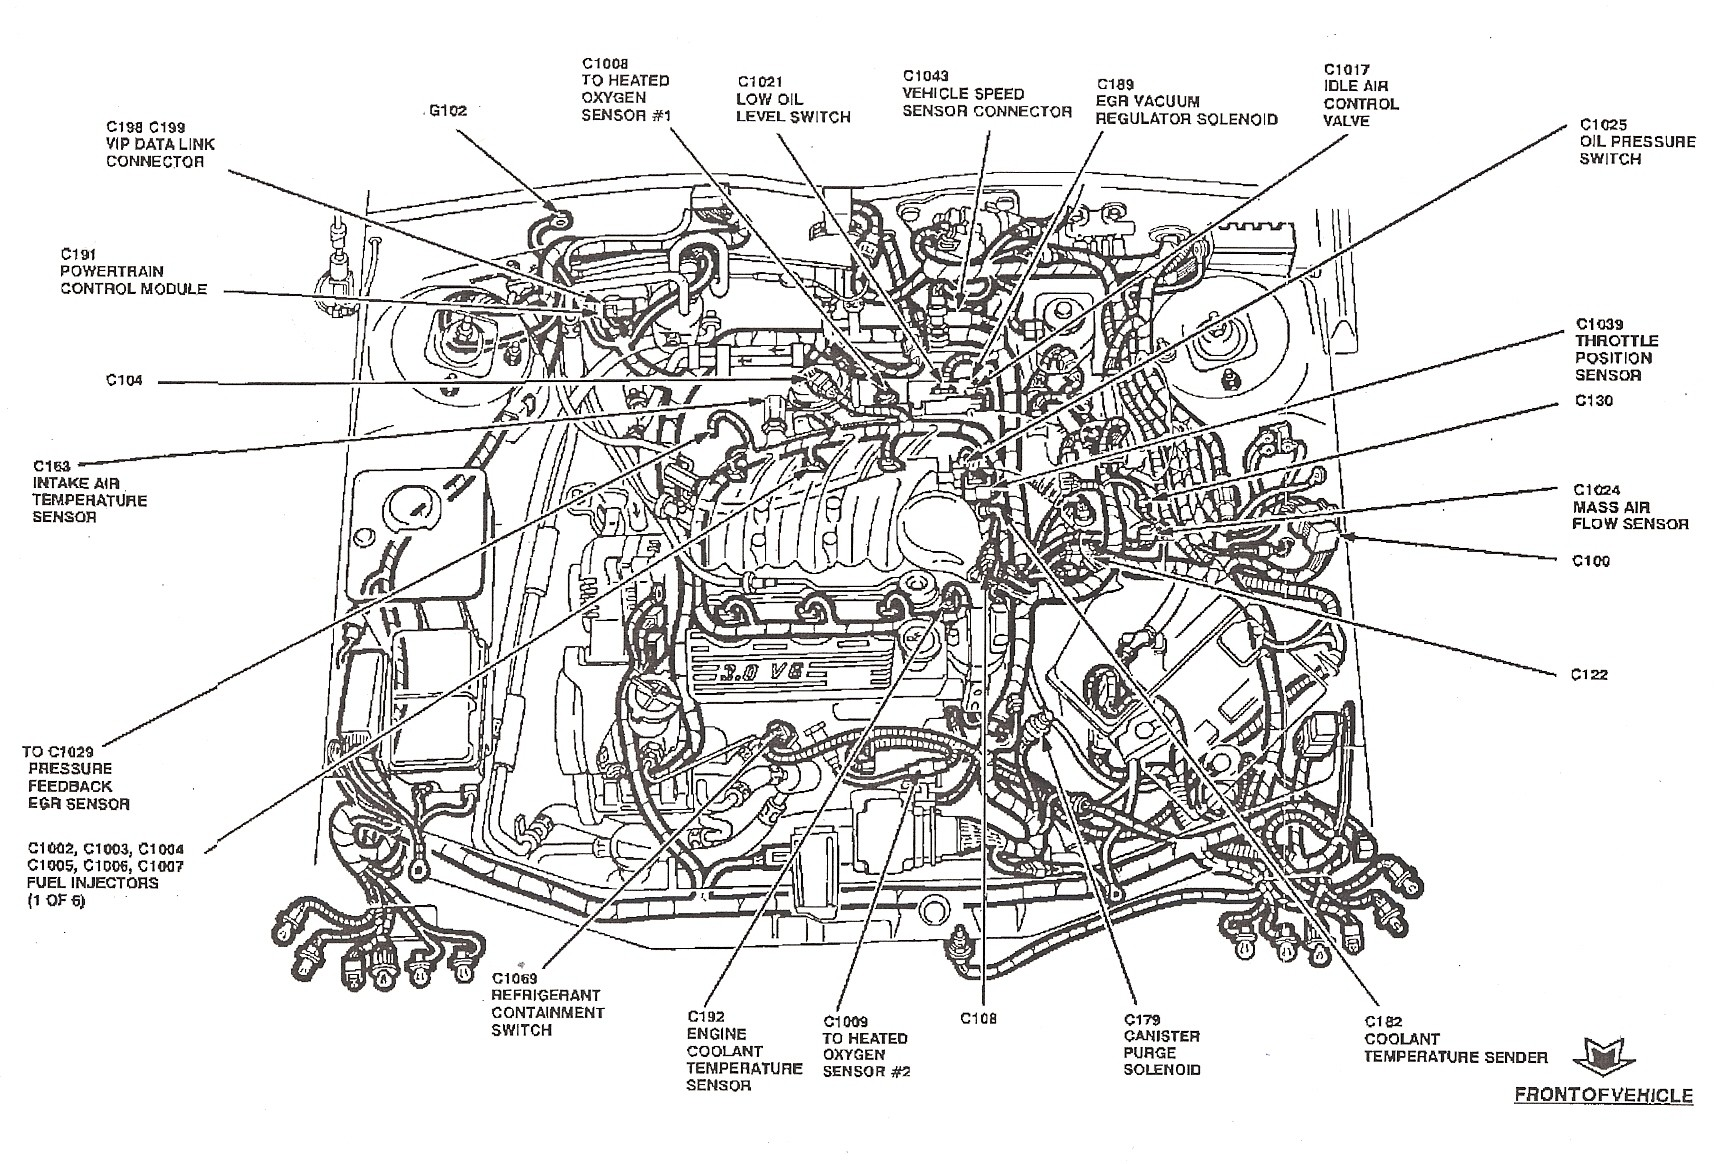 hight resolution of 2001 ford taurus engine diagram wiring diagram libraries 97 taurus engine diagram